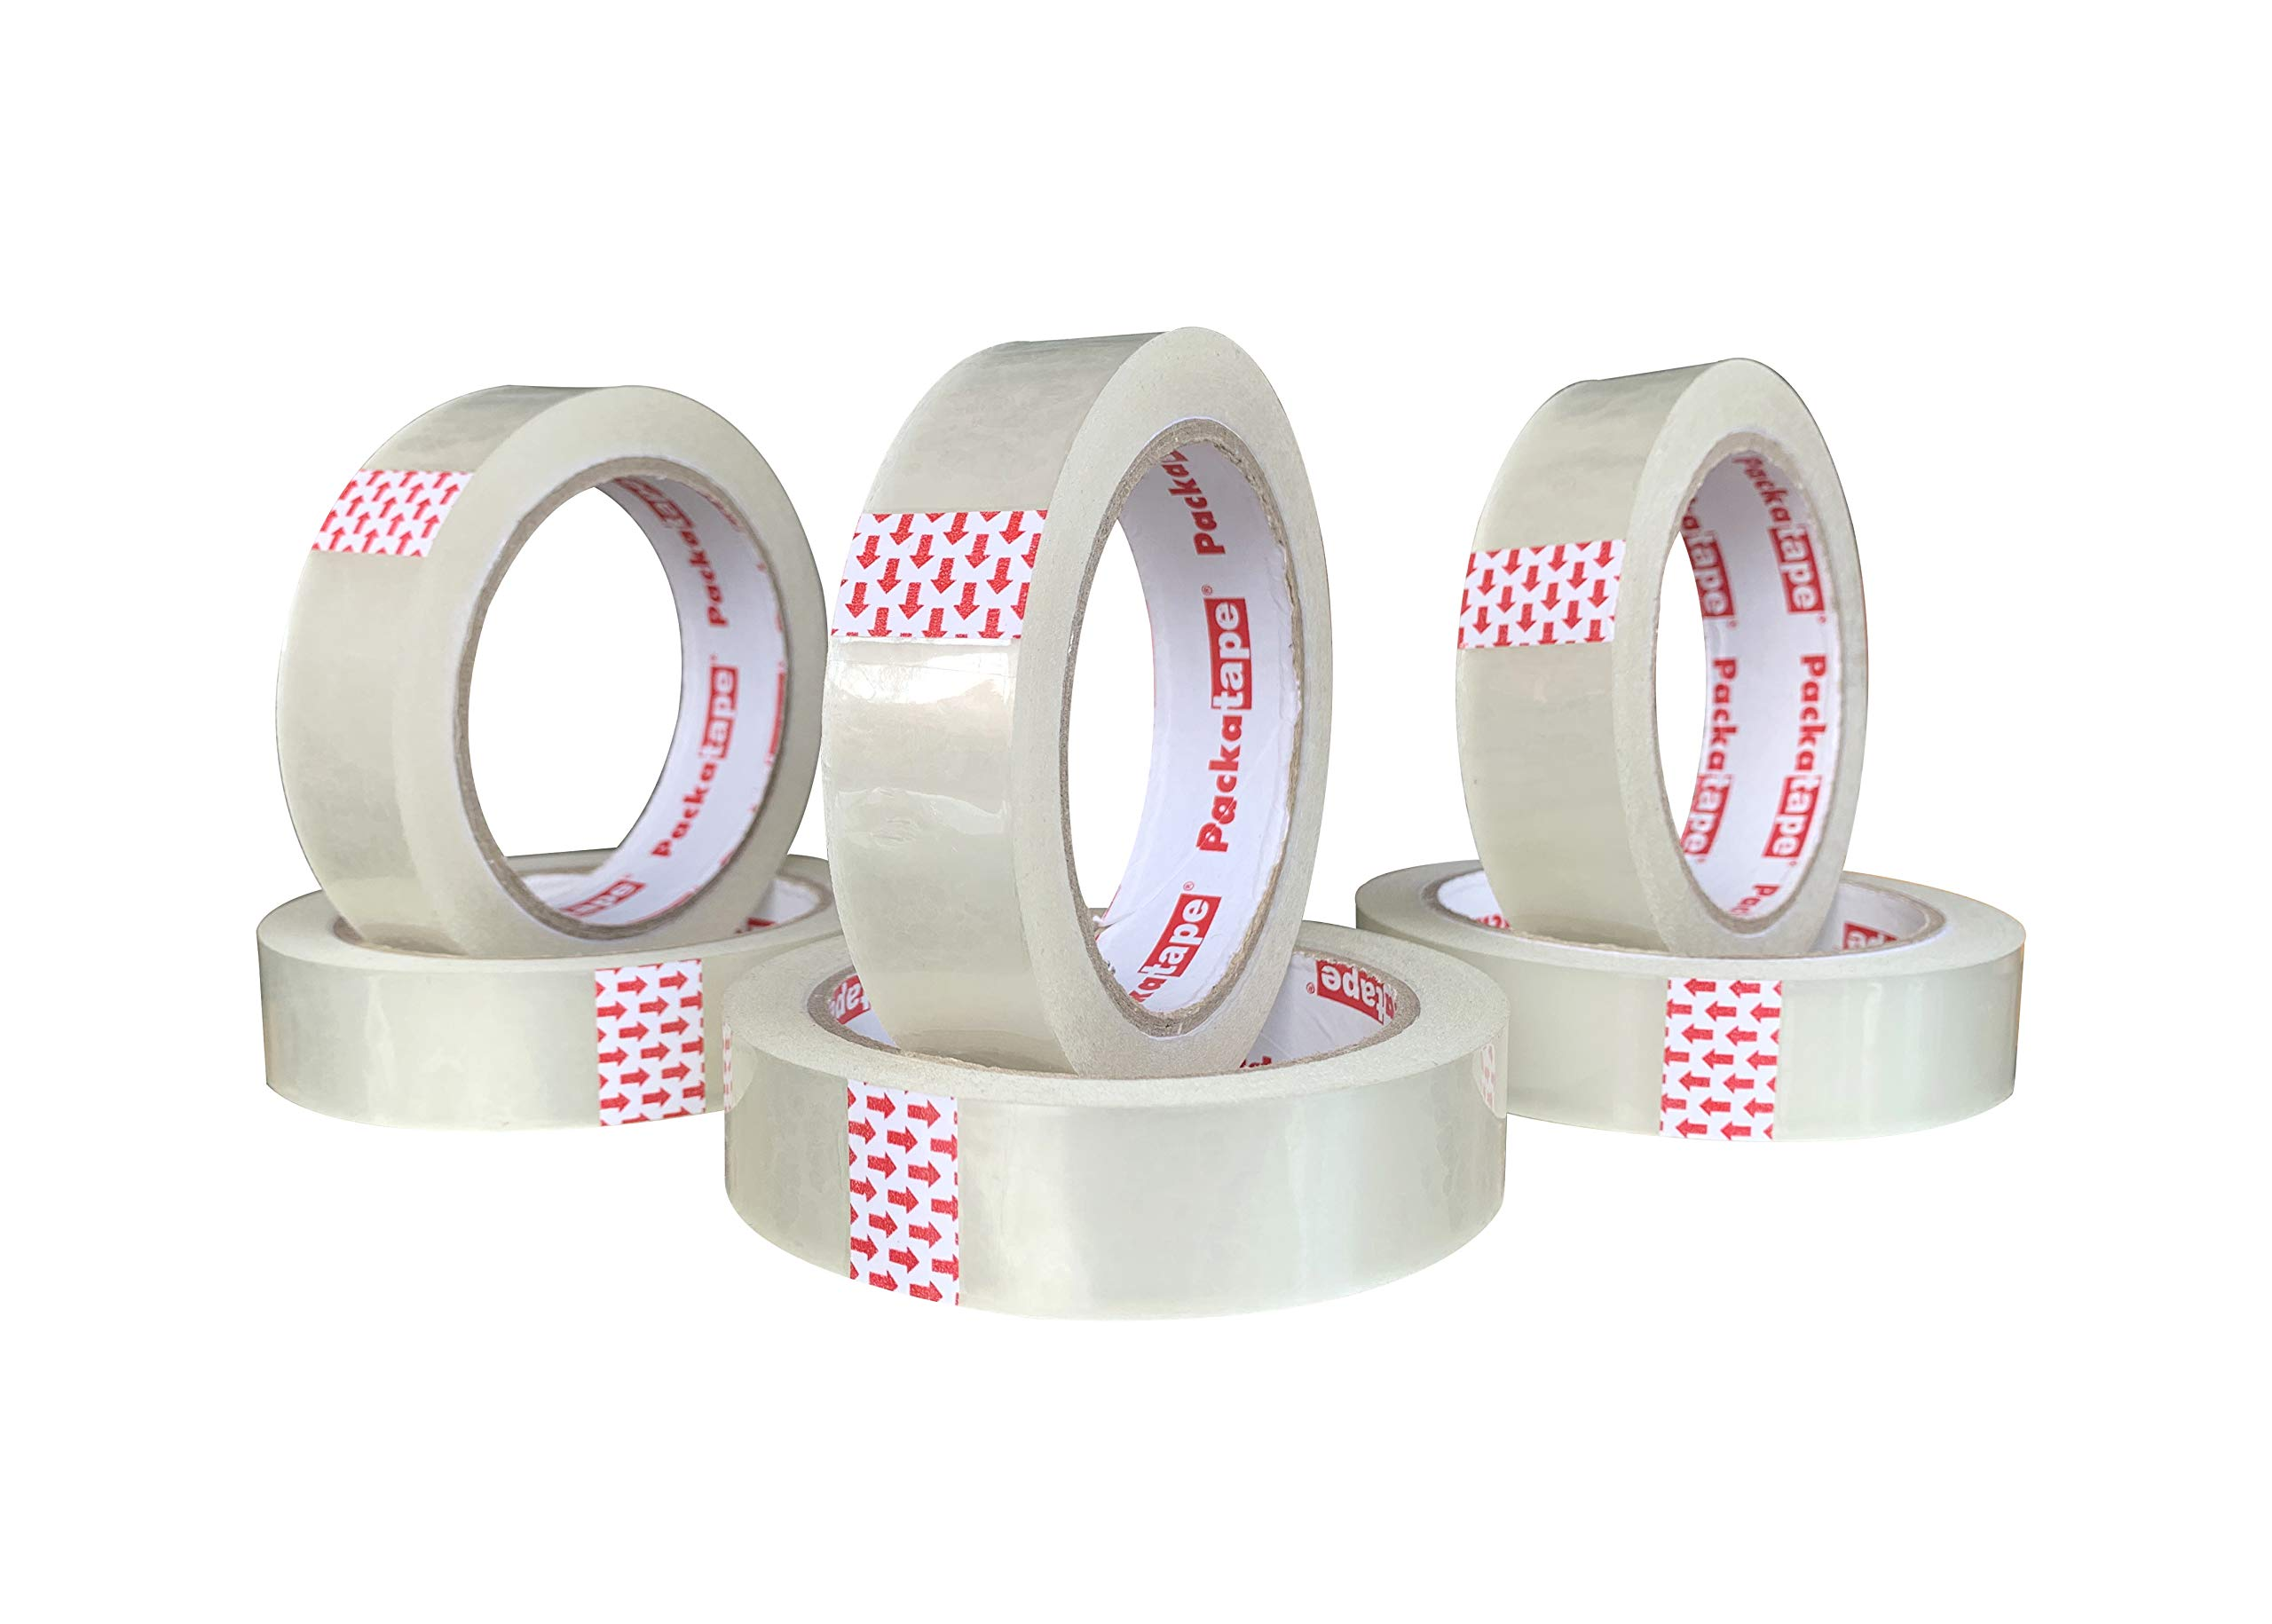 Office Sellotape Clear Cellotape Packing Tape Gift Wrapping Cello Tape Roll x 3